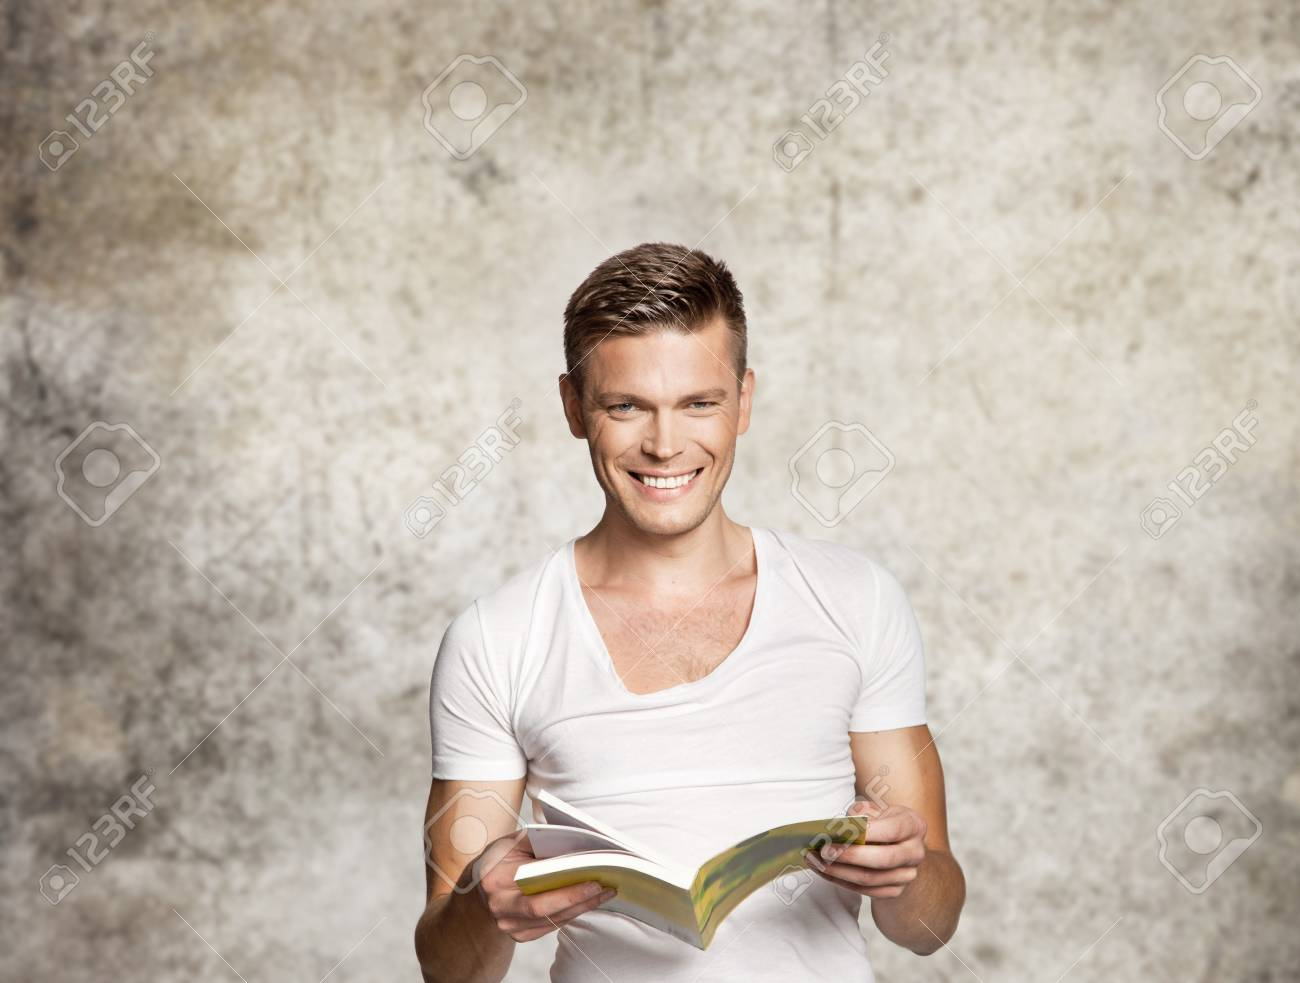 Portrait of a man with a book Stock Photo - 15864158